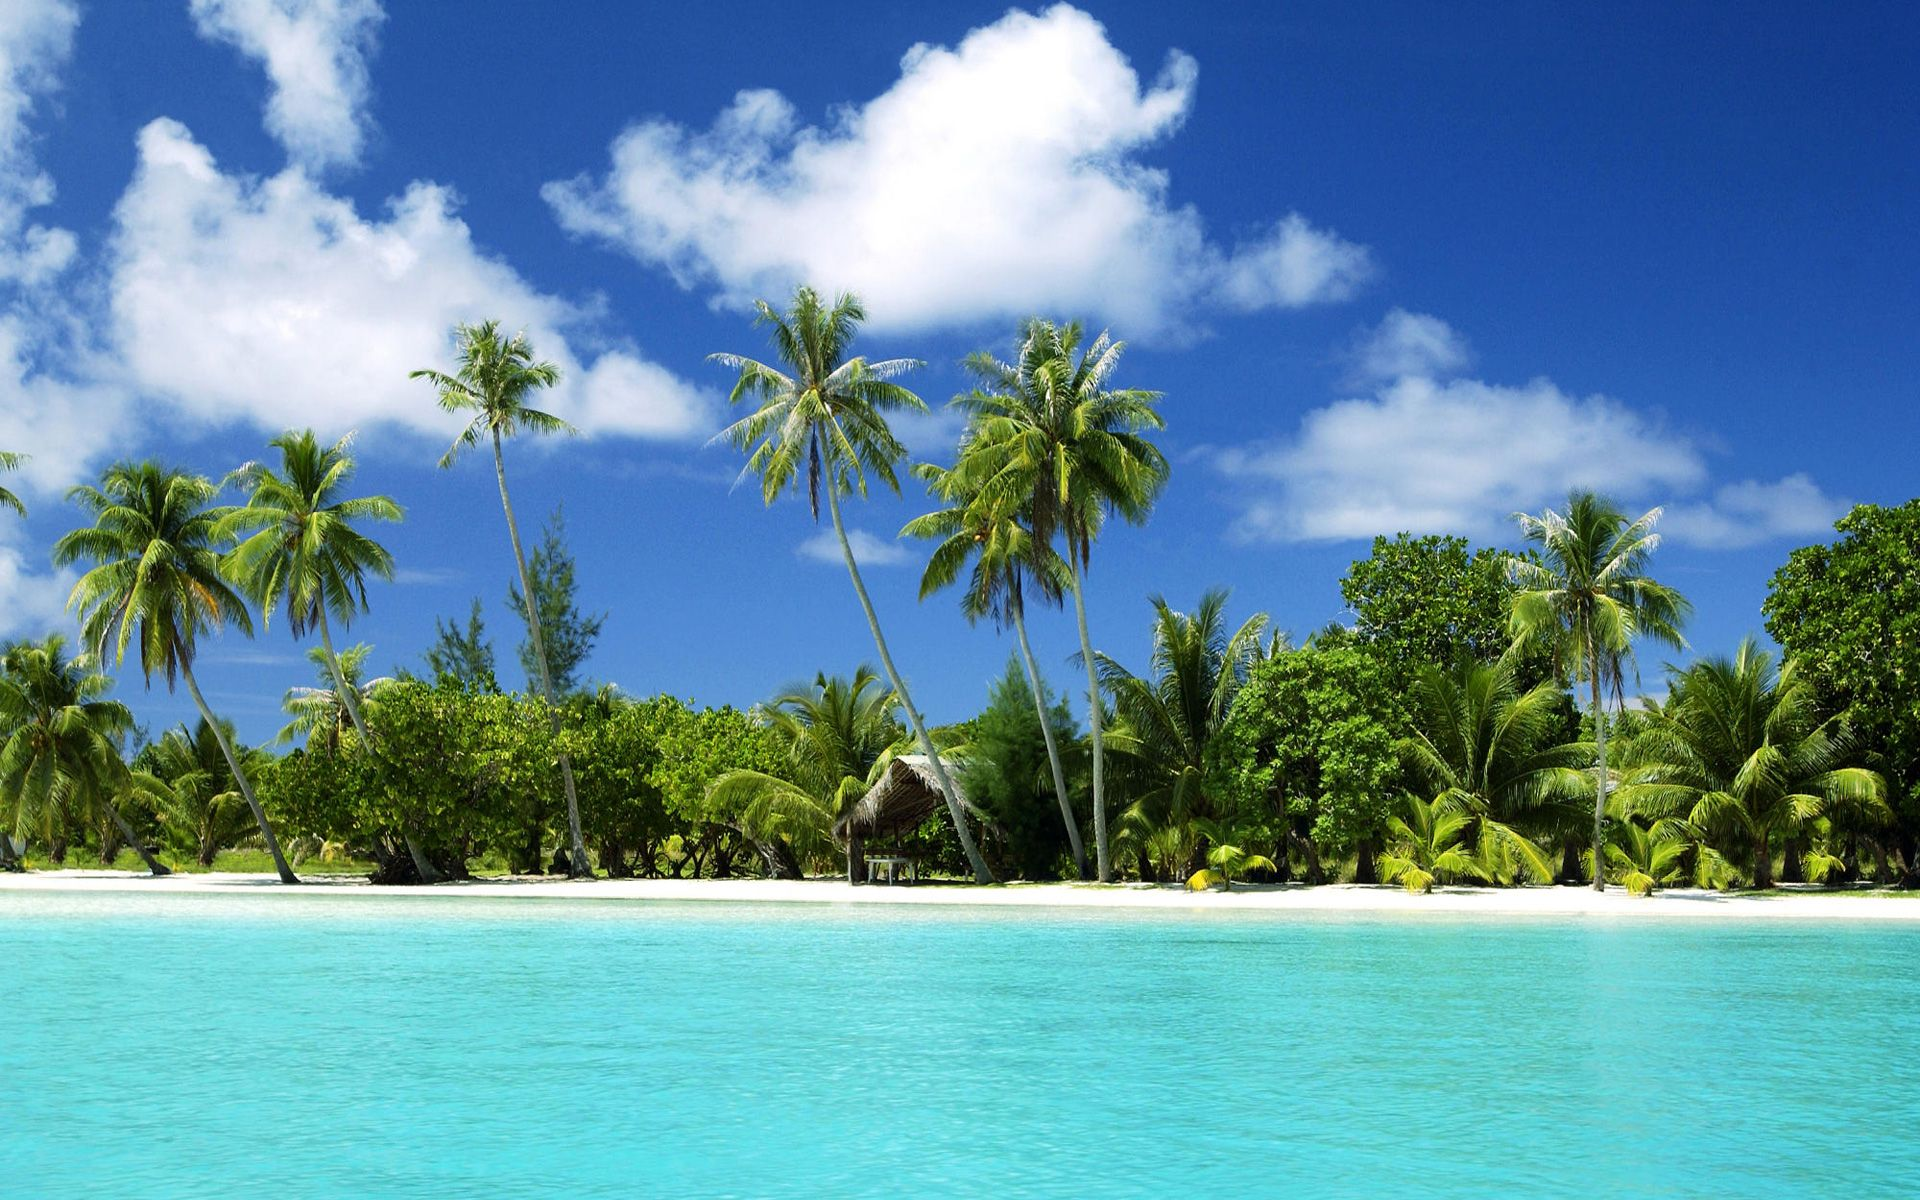 Most Beautiful Tropical Beaches Hd Widescreen 11 High Definition Wallpapers HD